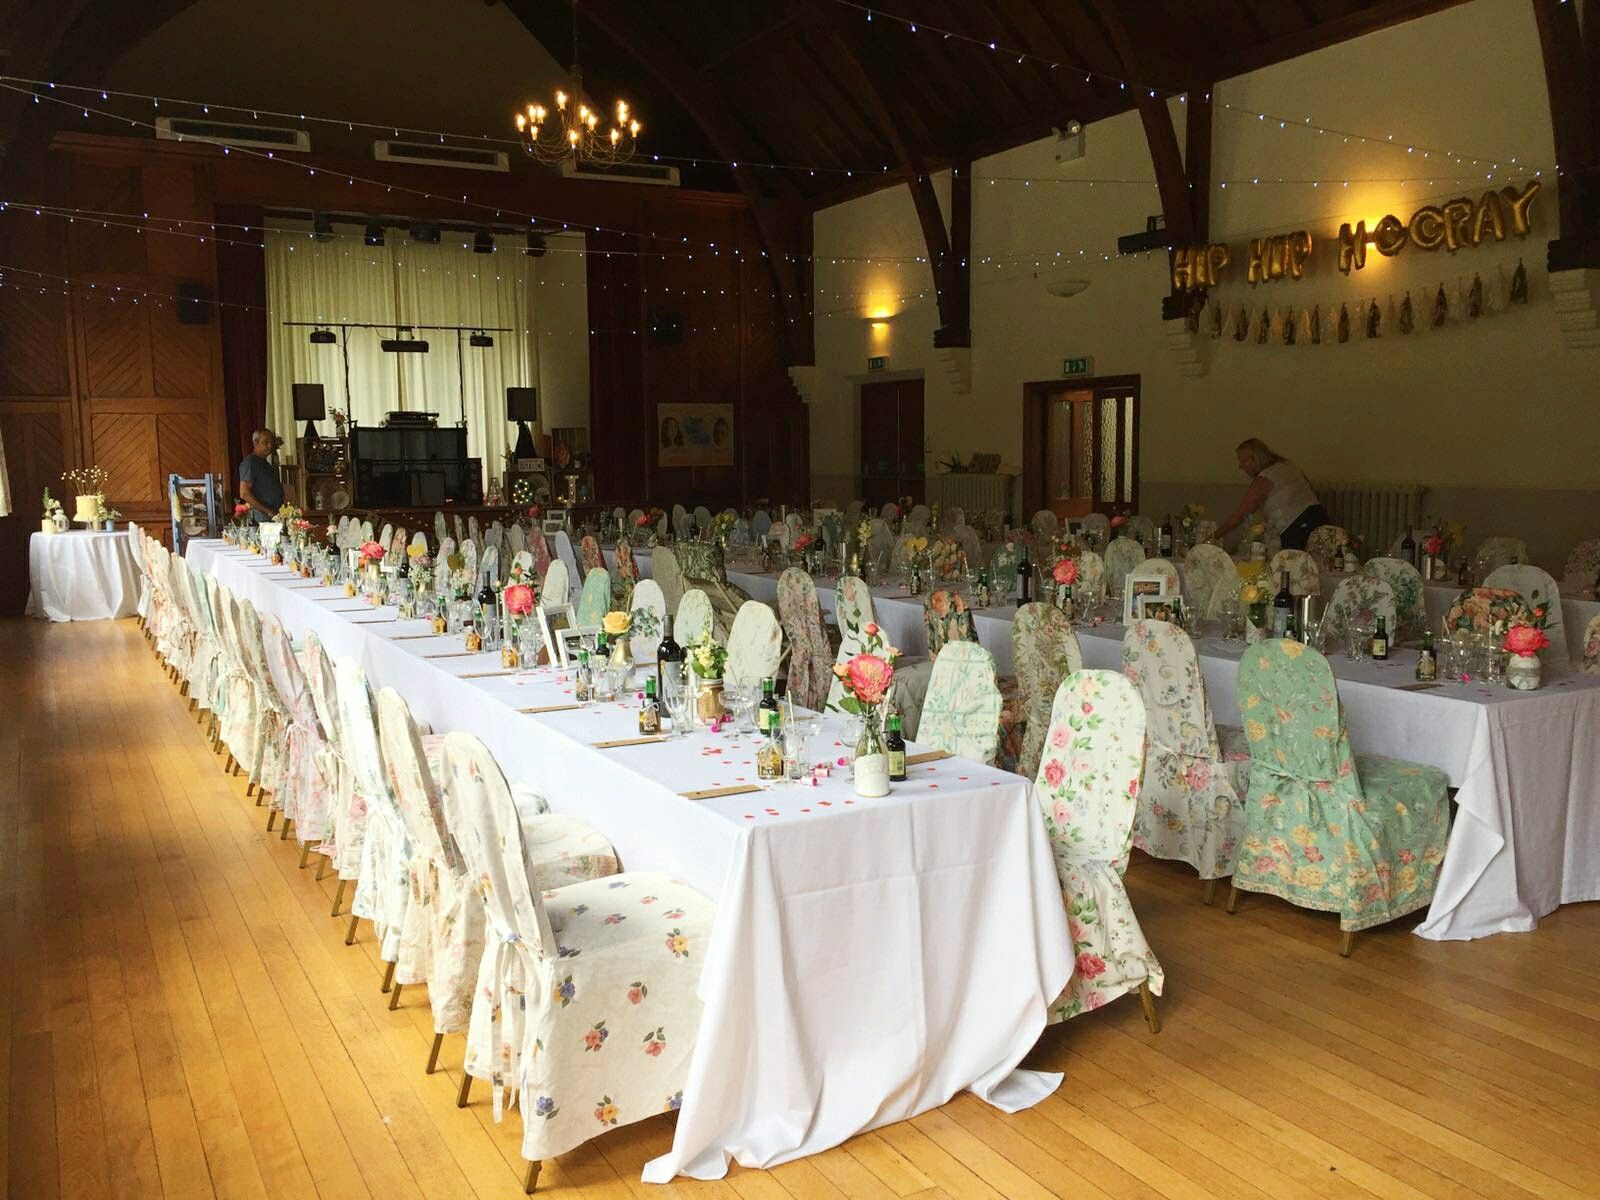 Betty Loves Vintage Vintage Floral Chair Covers All Lined Up In Rows At A Beautiful Village Hall Weddin Chair Covers Wedding Floral Chair Village Hall Wedding